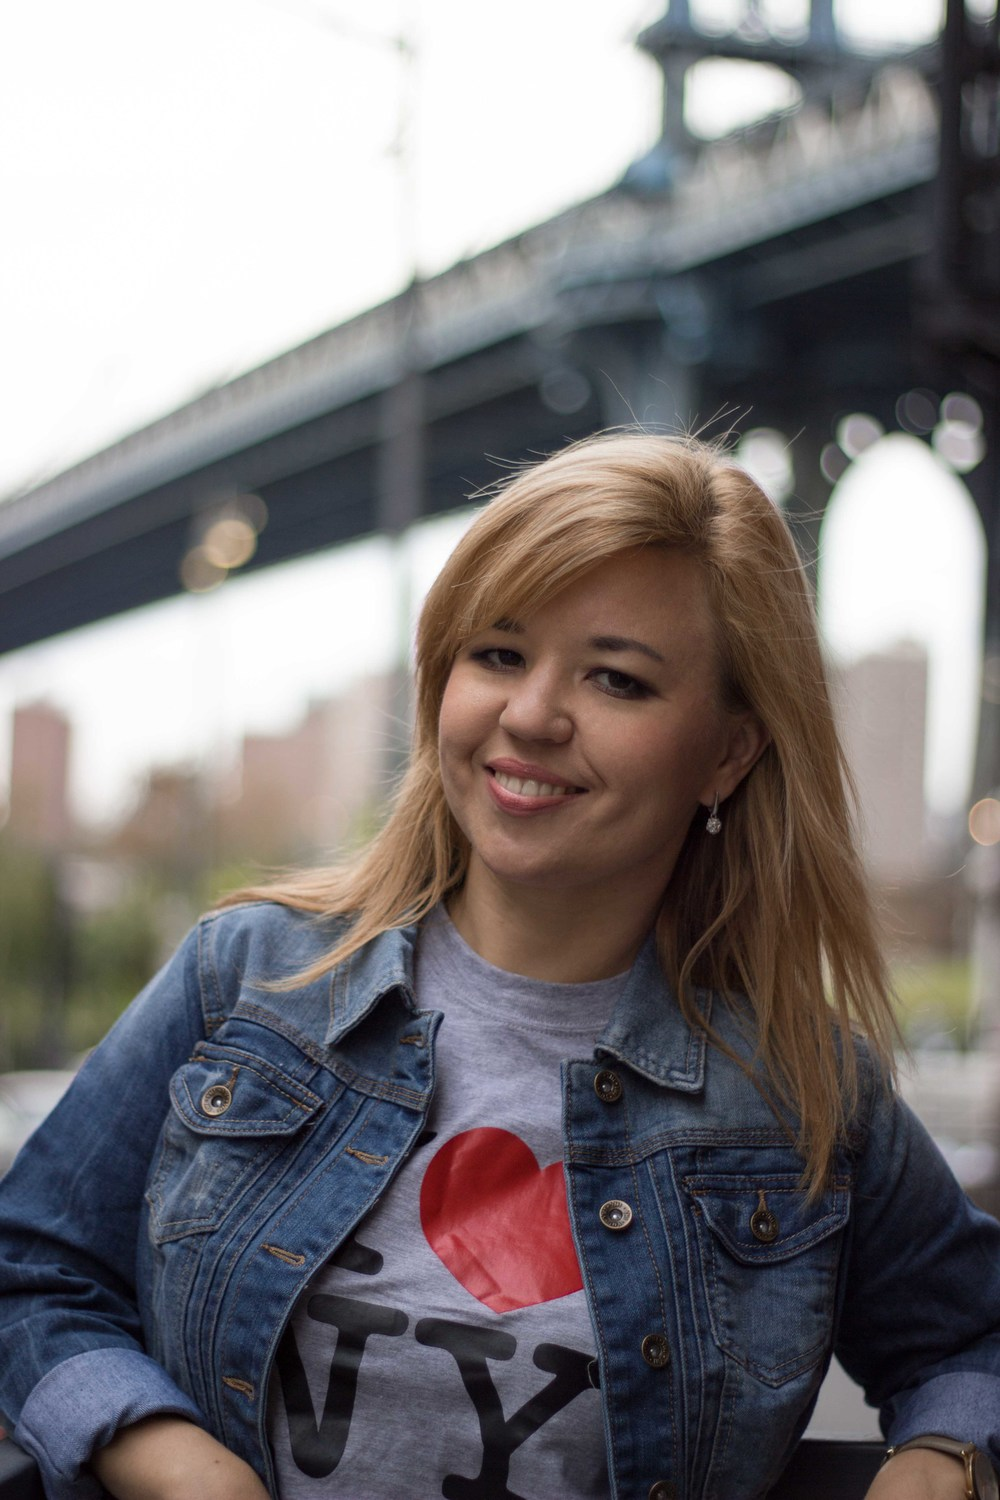 natasha brooklyn downtown manhattan bridge portrait new york irina korrelat.jpg